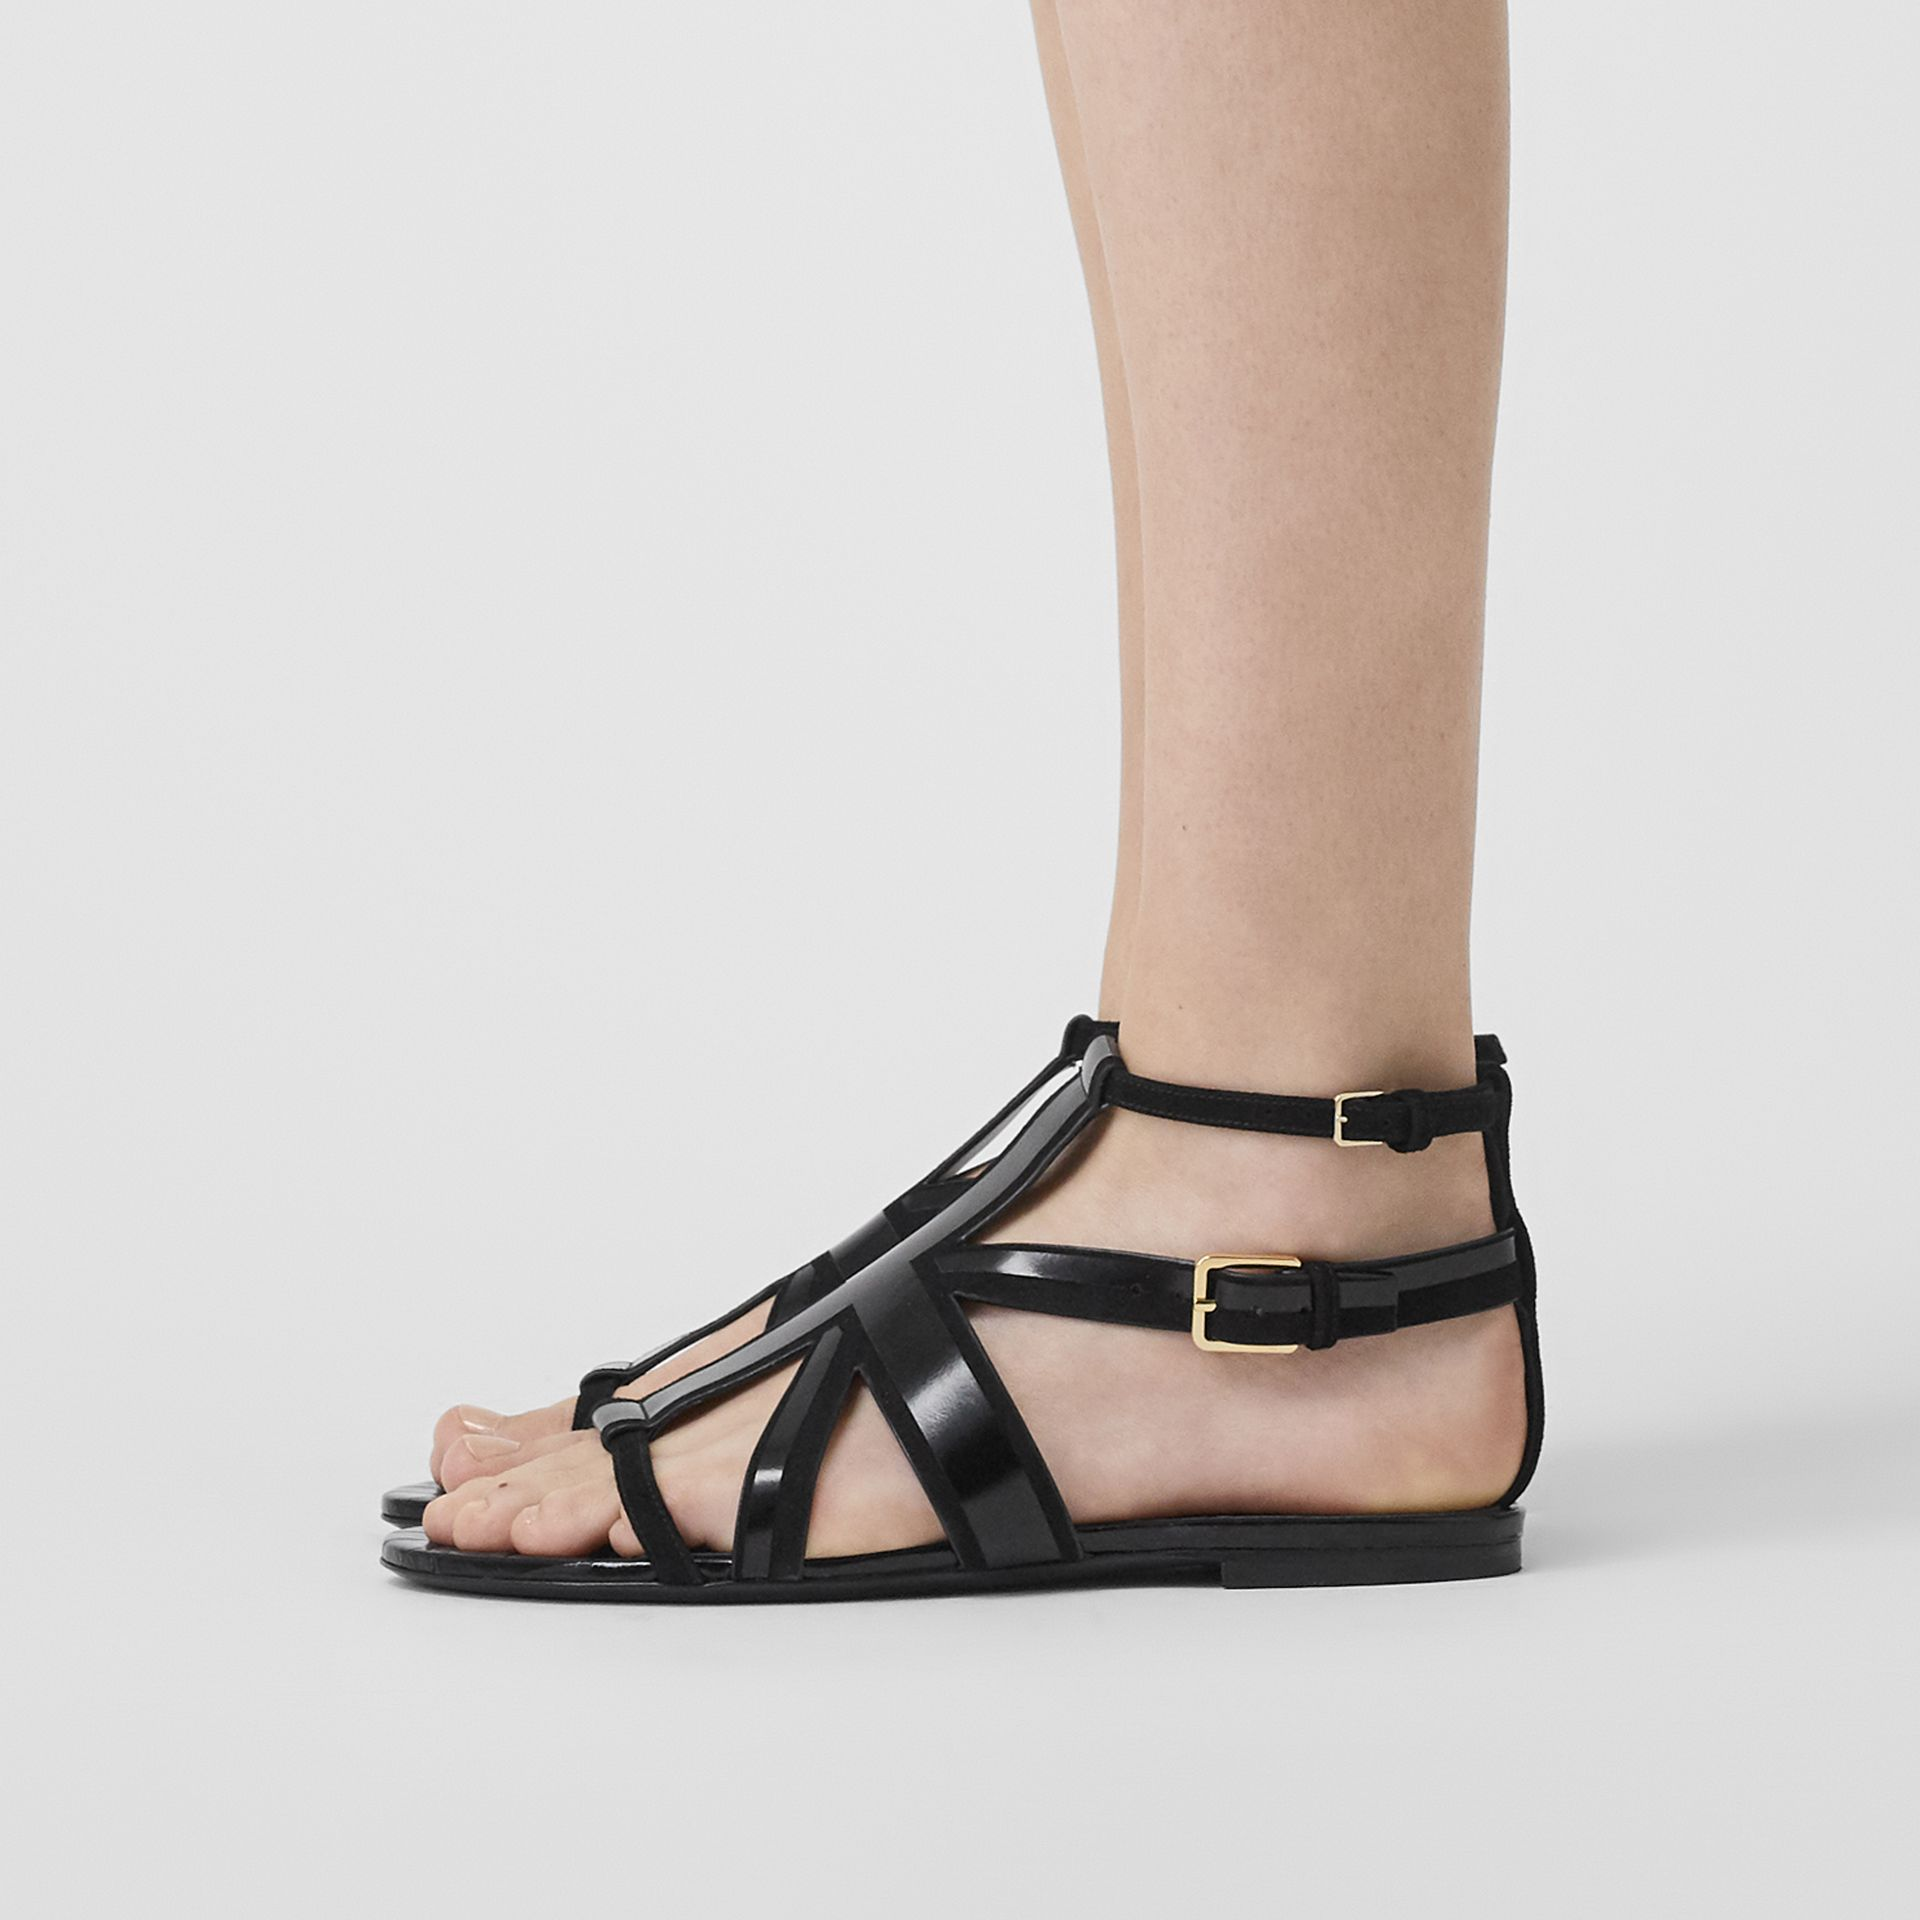 Union Jack Motif Leather and Suede Sandals in Black - Women | Burberry - gallery image 2